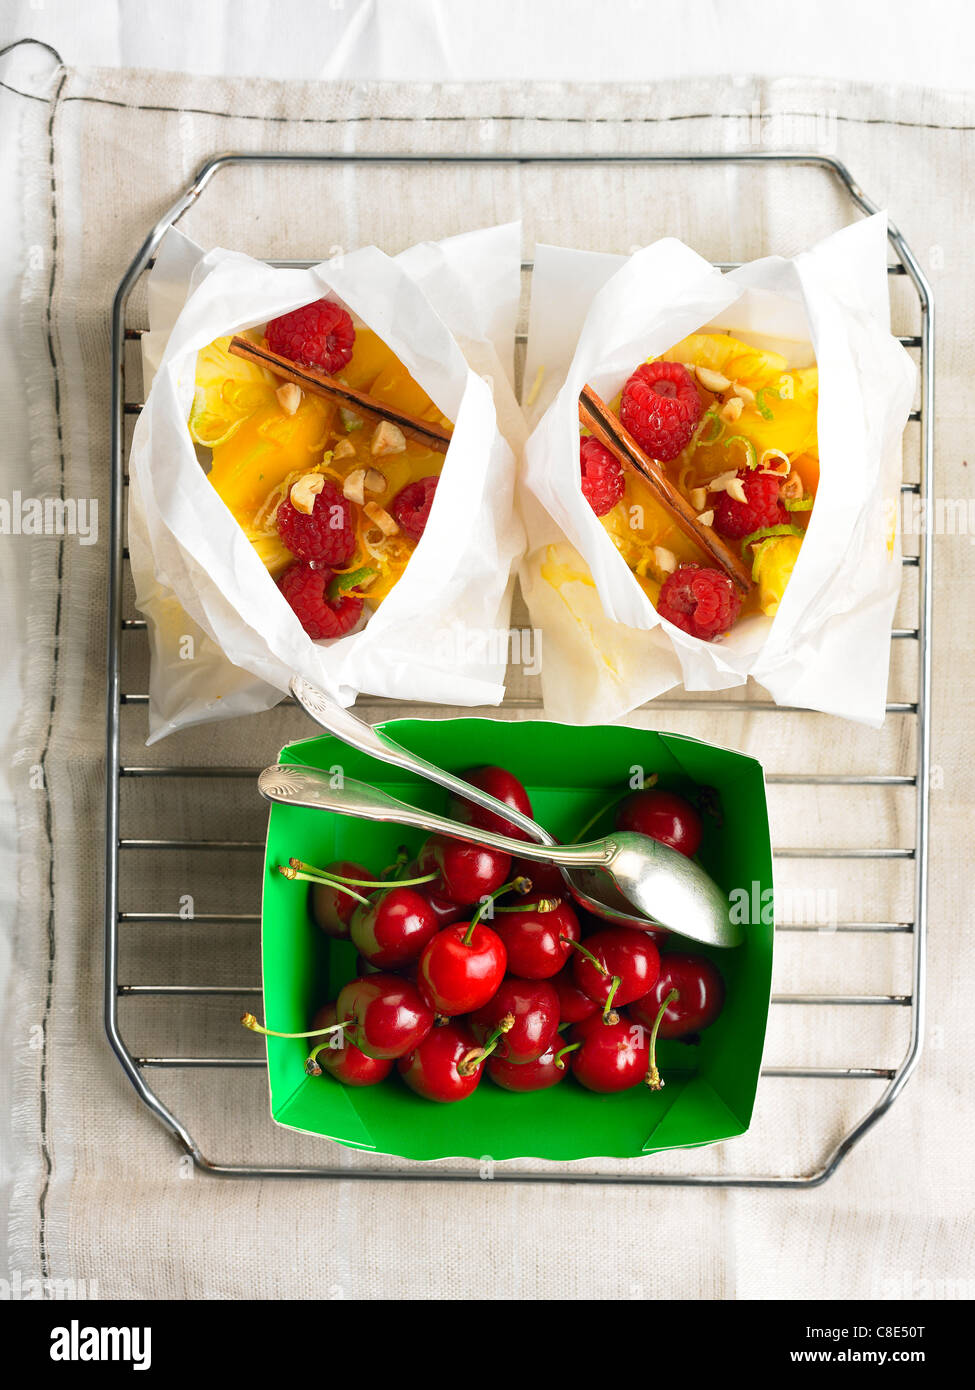 Fruit cooked in wax papper - Stock Image